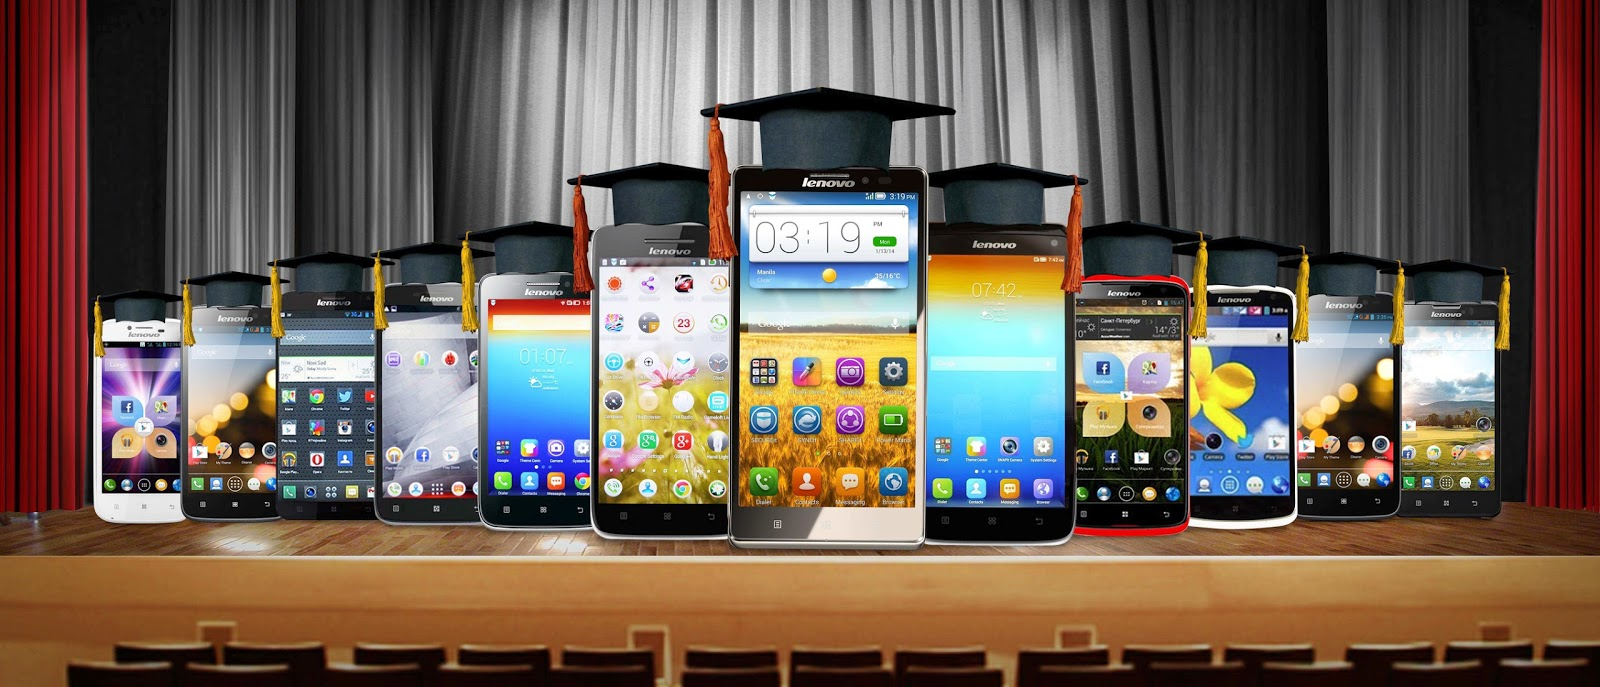 Promo Alert Help Graduates Level Up With A Lenovo Smartphone S650 Android Quadcore Graduation Gift Guide